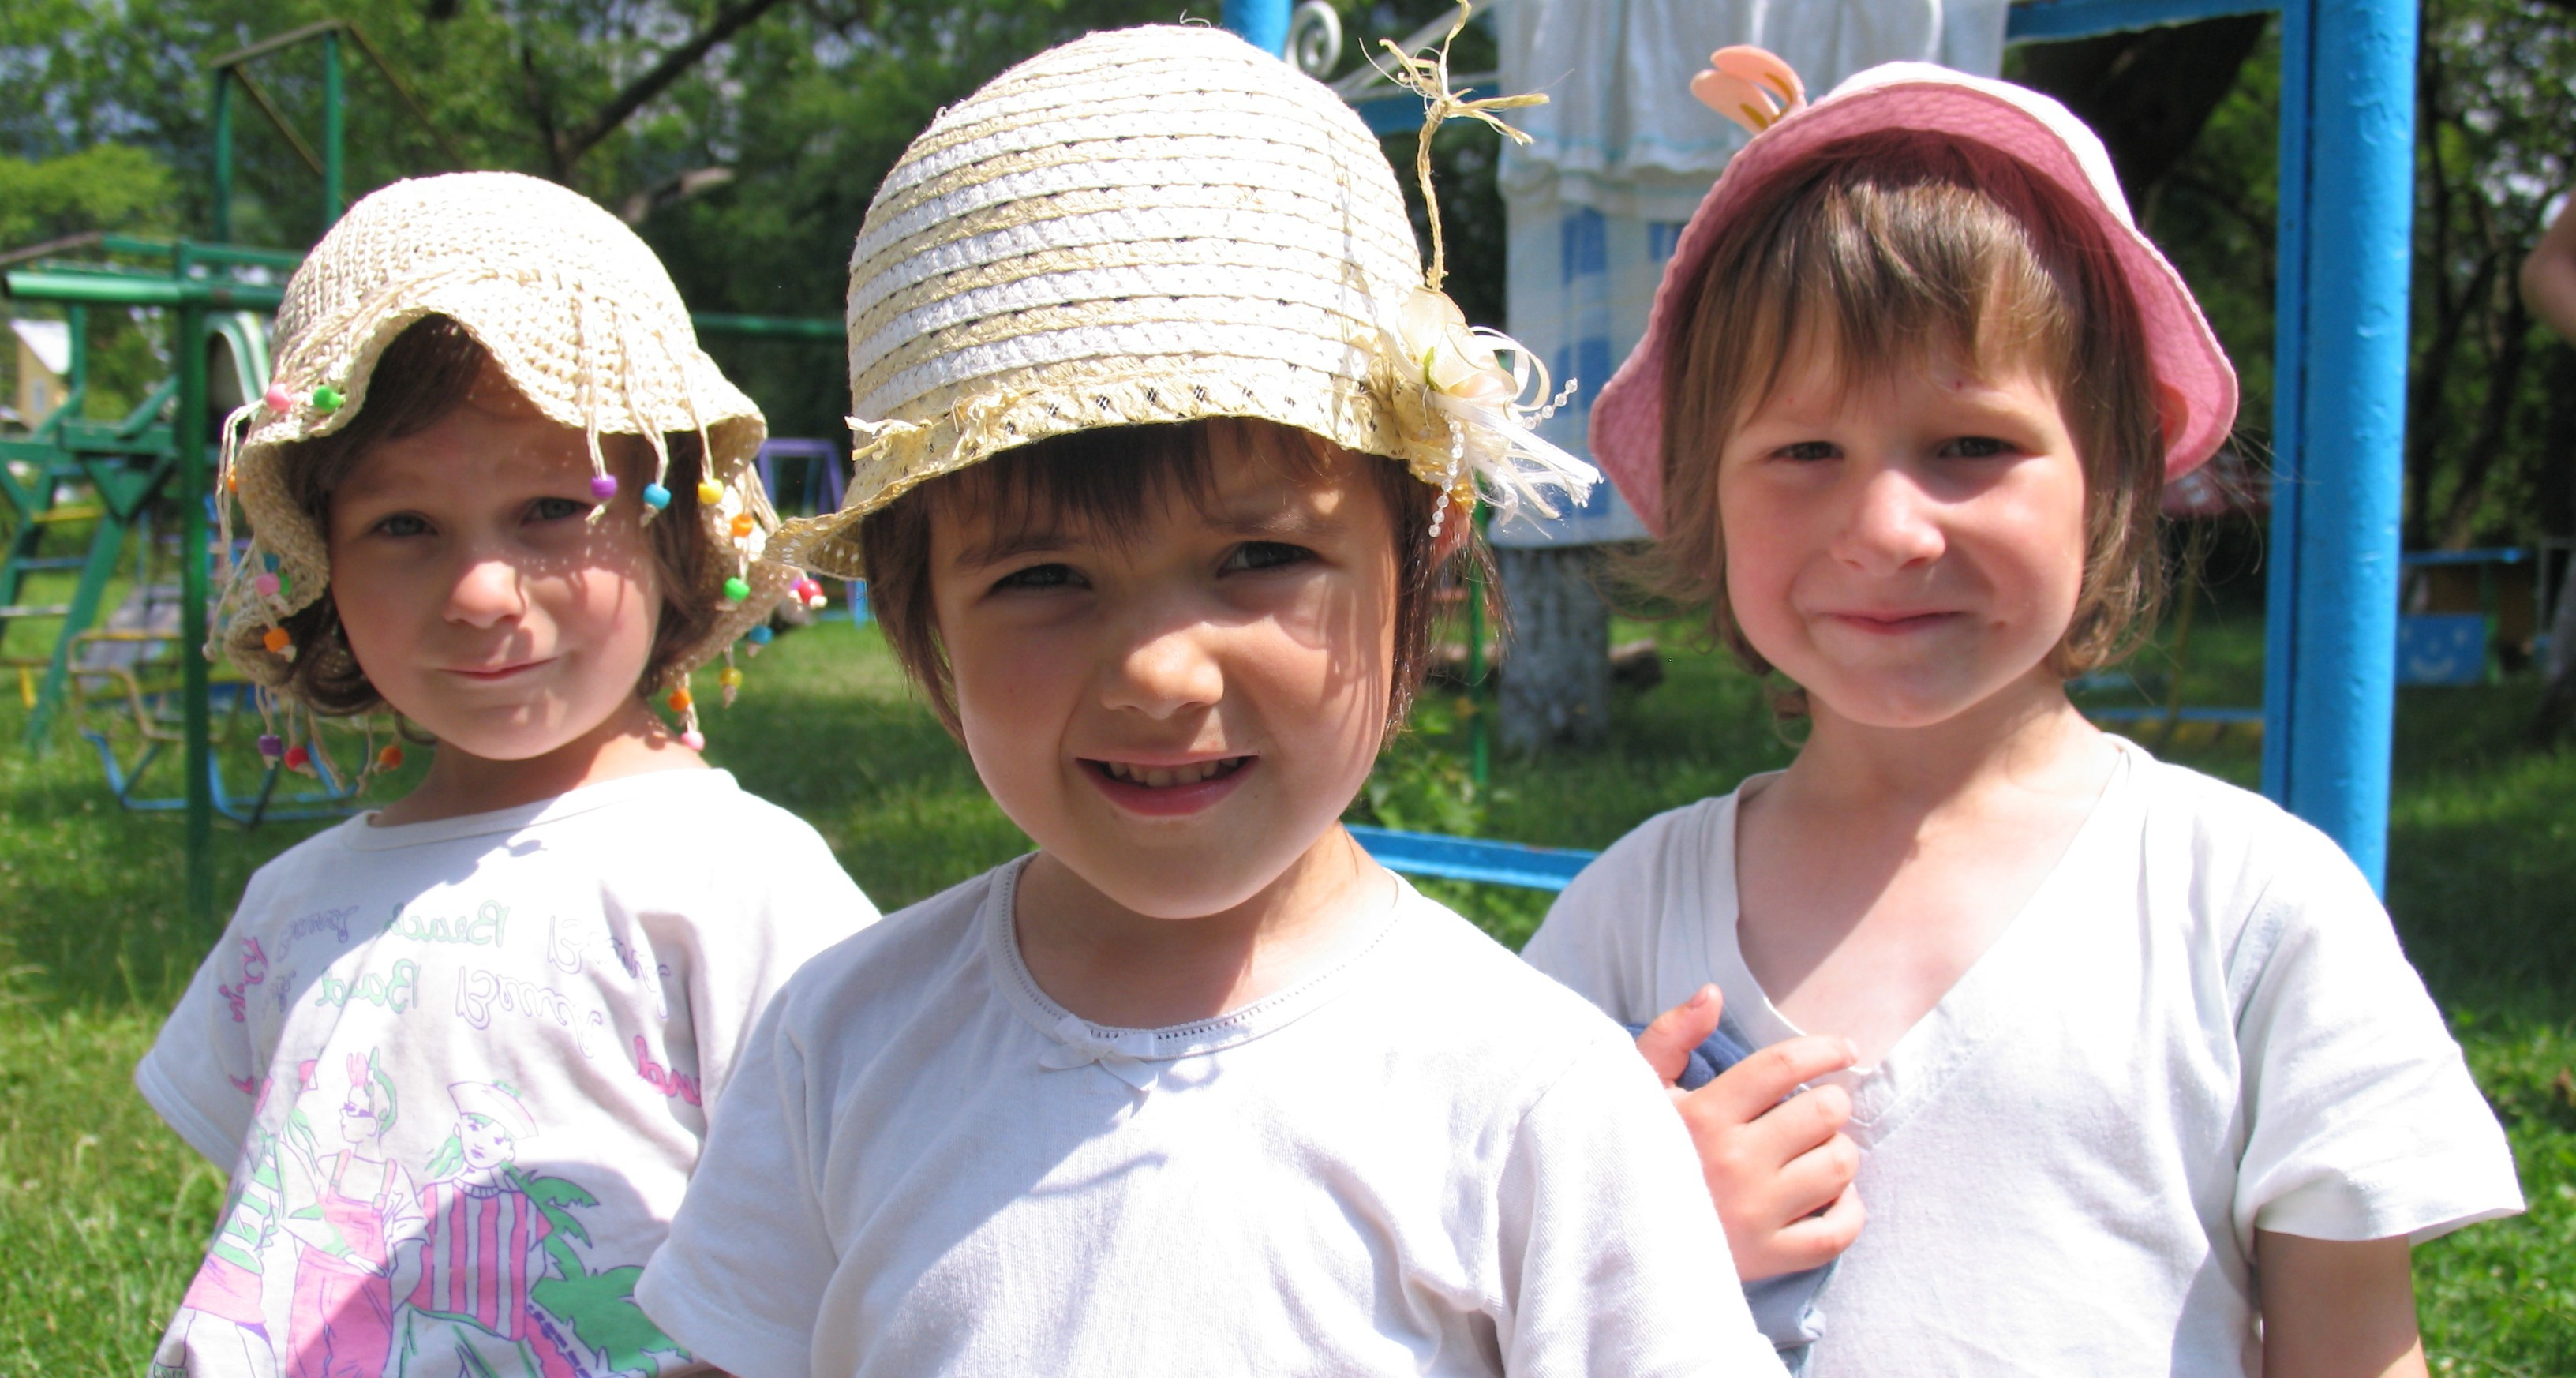 """Mission Litauen 2011"" - Lithuanian children receiving brand new donated summer hats"